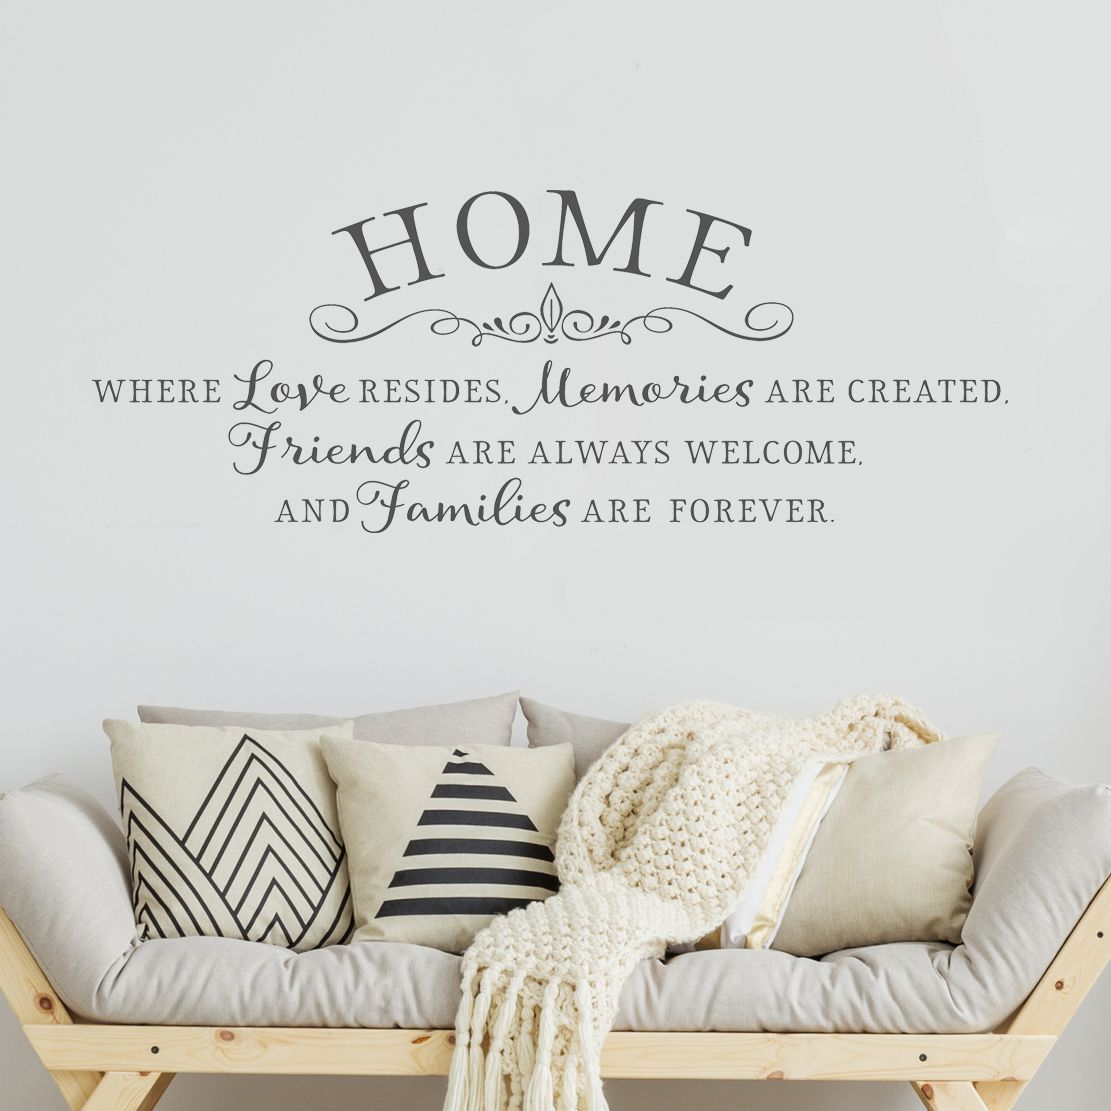 Home Is Where Love Resides Inspiring Wall Decal Home Quotes Kitchen Wall Quotes Kitchen Wall Decals Wall Quotes Decals